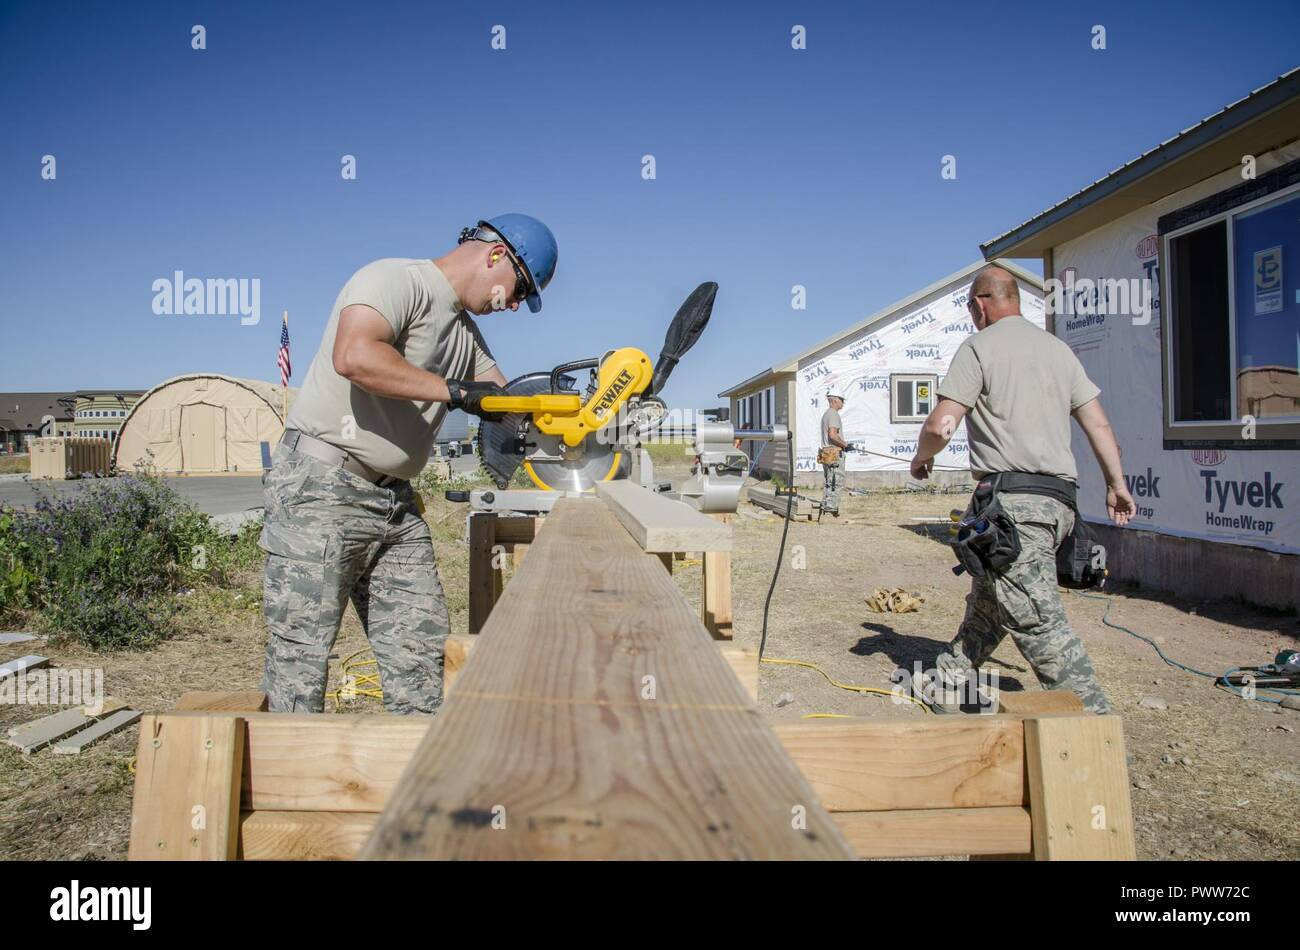 U.S. Air Force Senior Airman Richard Green, an Airman with the 128th Air Refueling Wing Civil Engineer Squadron, Wisconsin Air National Guard, operates a miter saw to make cuts to siding June 22, 2017, at the Crow innovative readiness training construction site. The Crow IRT is a deployment for training opportunity that provides training and readiness for military personnel while addressing public service needs. Stock Photo